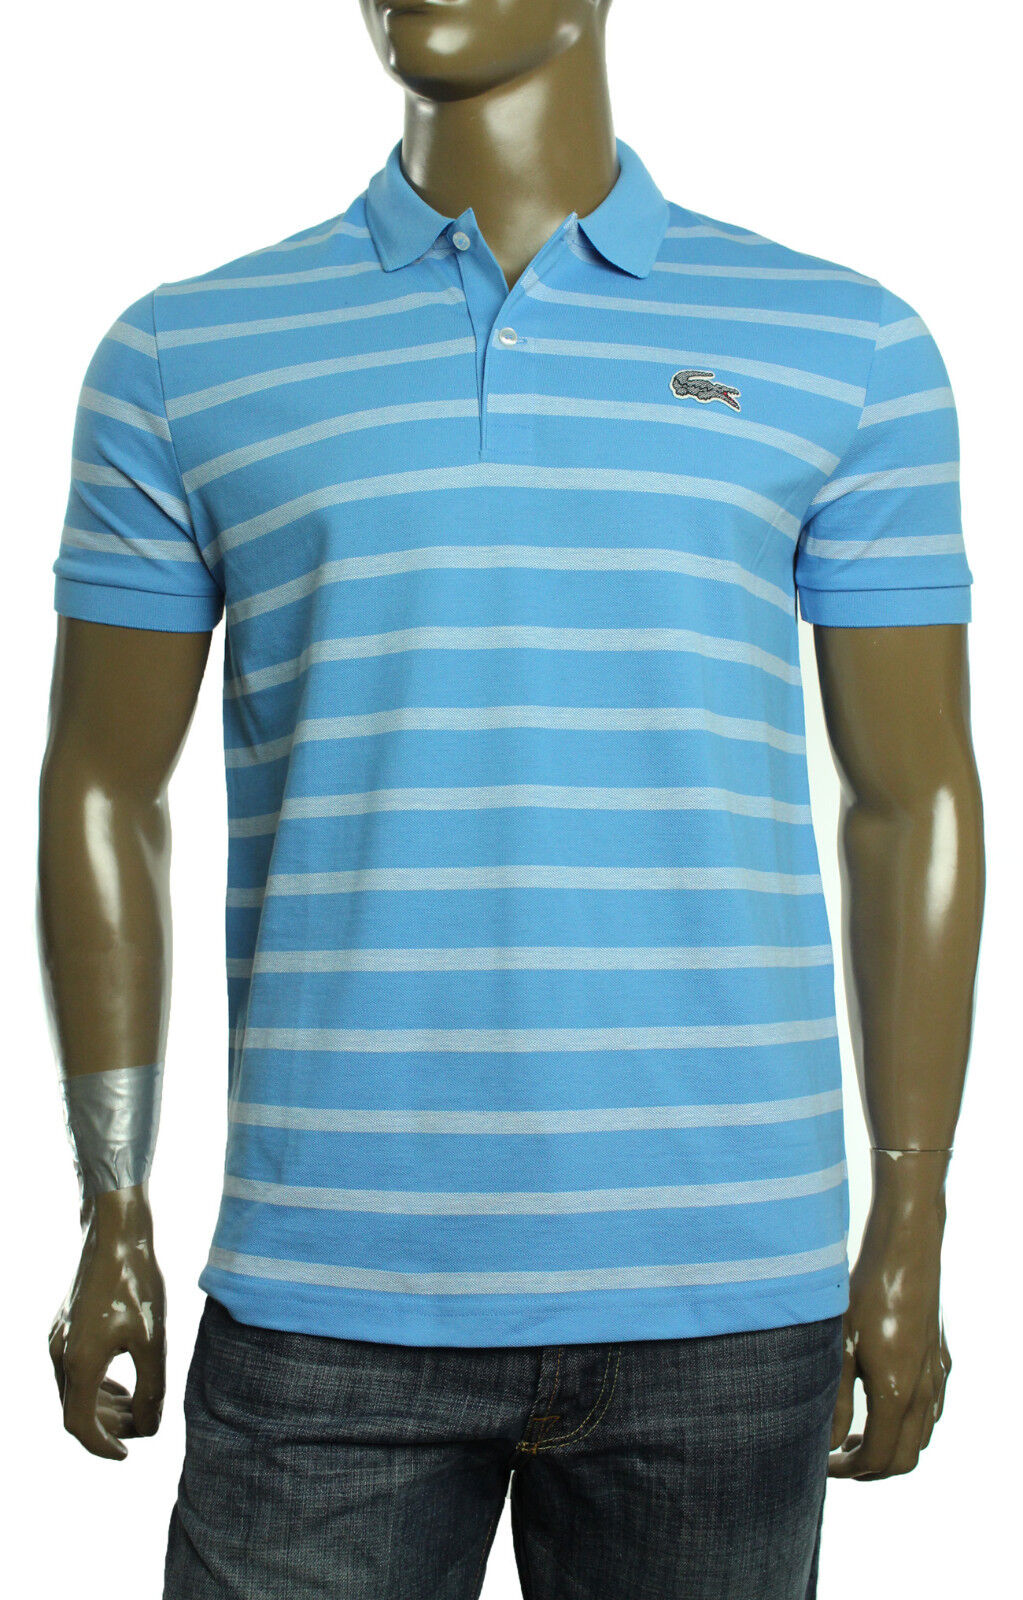 New Mens Lacoste Caviar Croc Regular Fit Spa bluee Stripe  Pique Polo Shirt 5 L